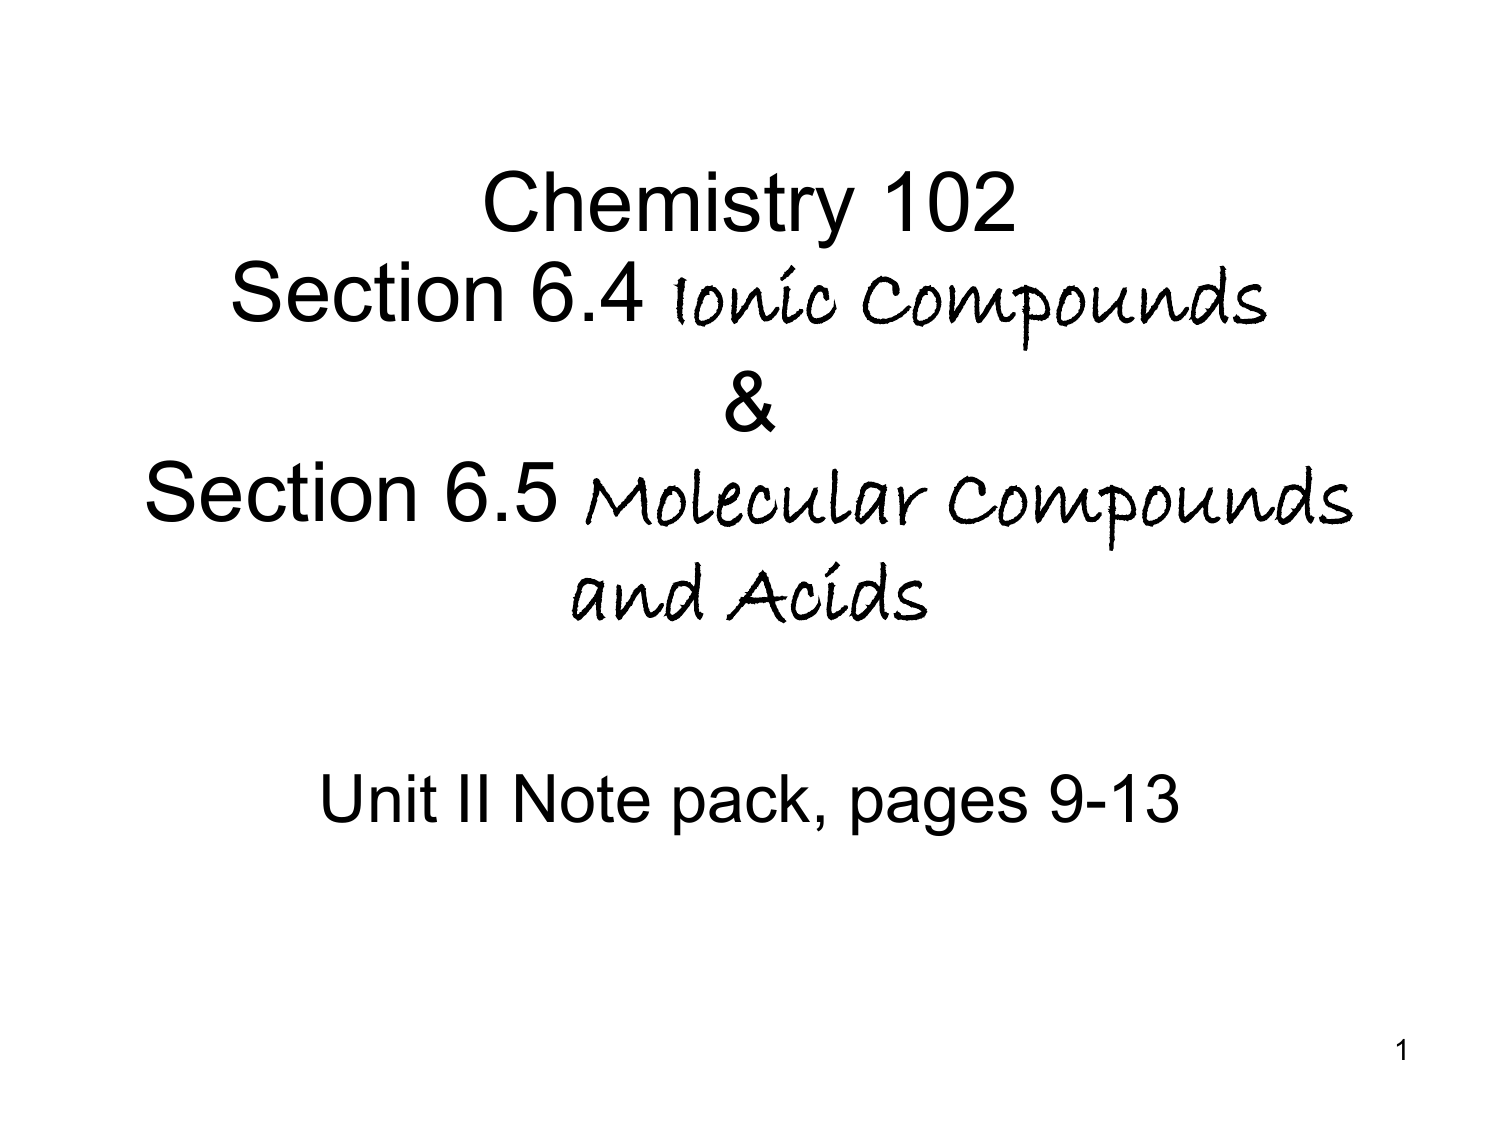 worksheet Molecular Compounds Worksheet naming molecular compounds worksheet tags chemistry 102 section 6 4 ionic 5 all